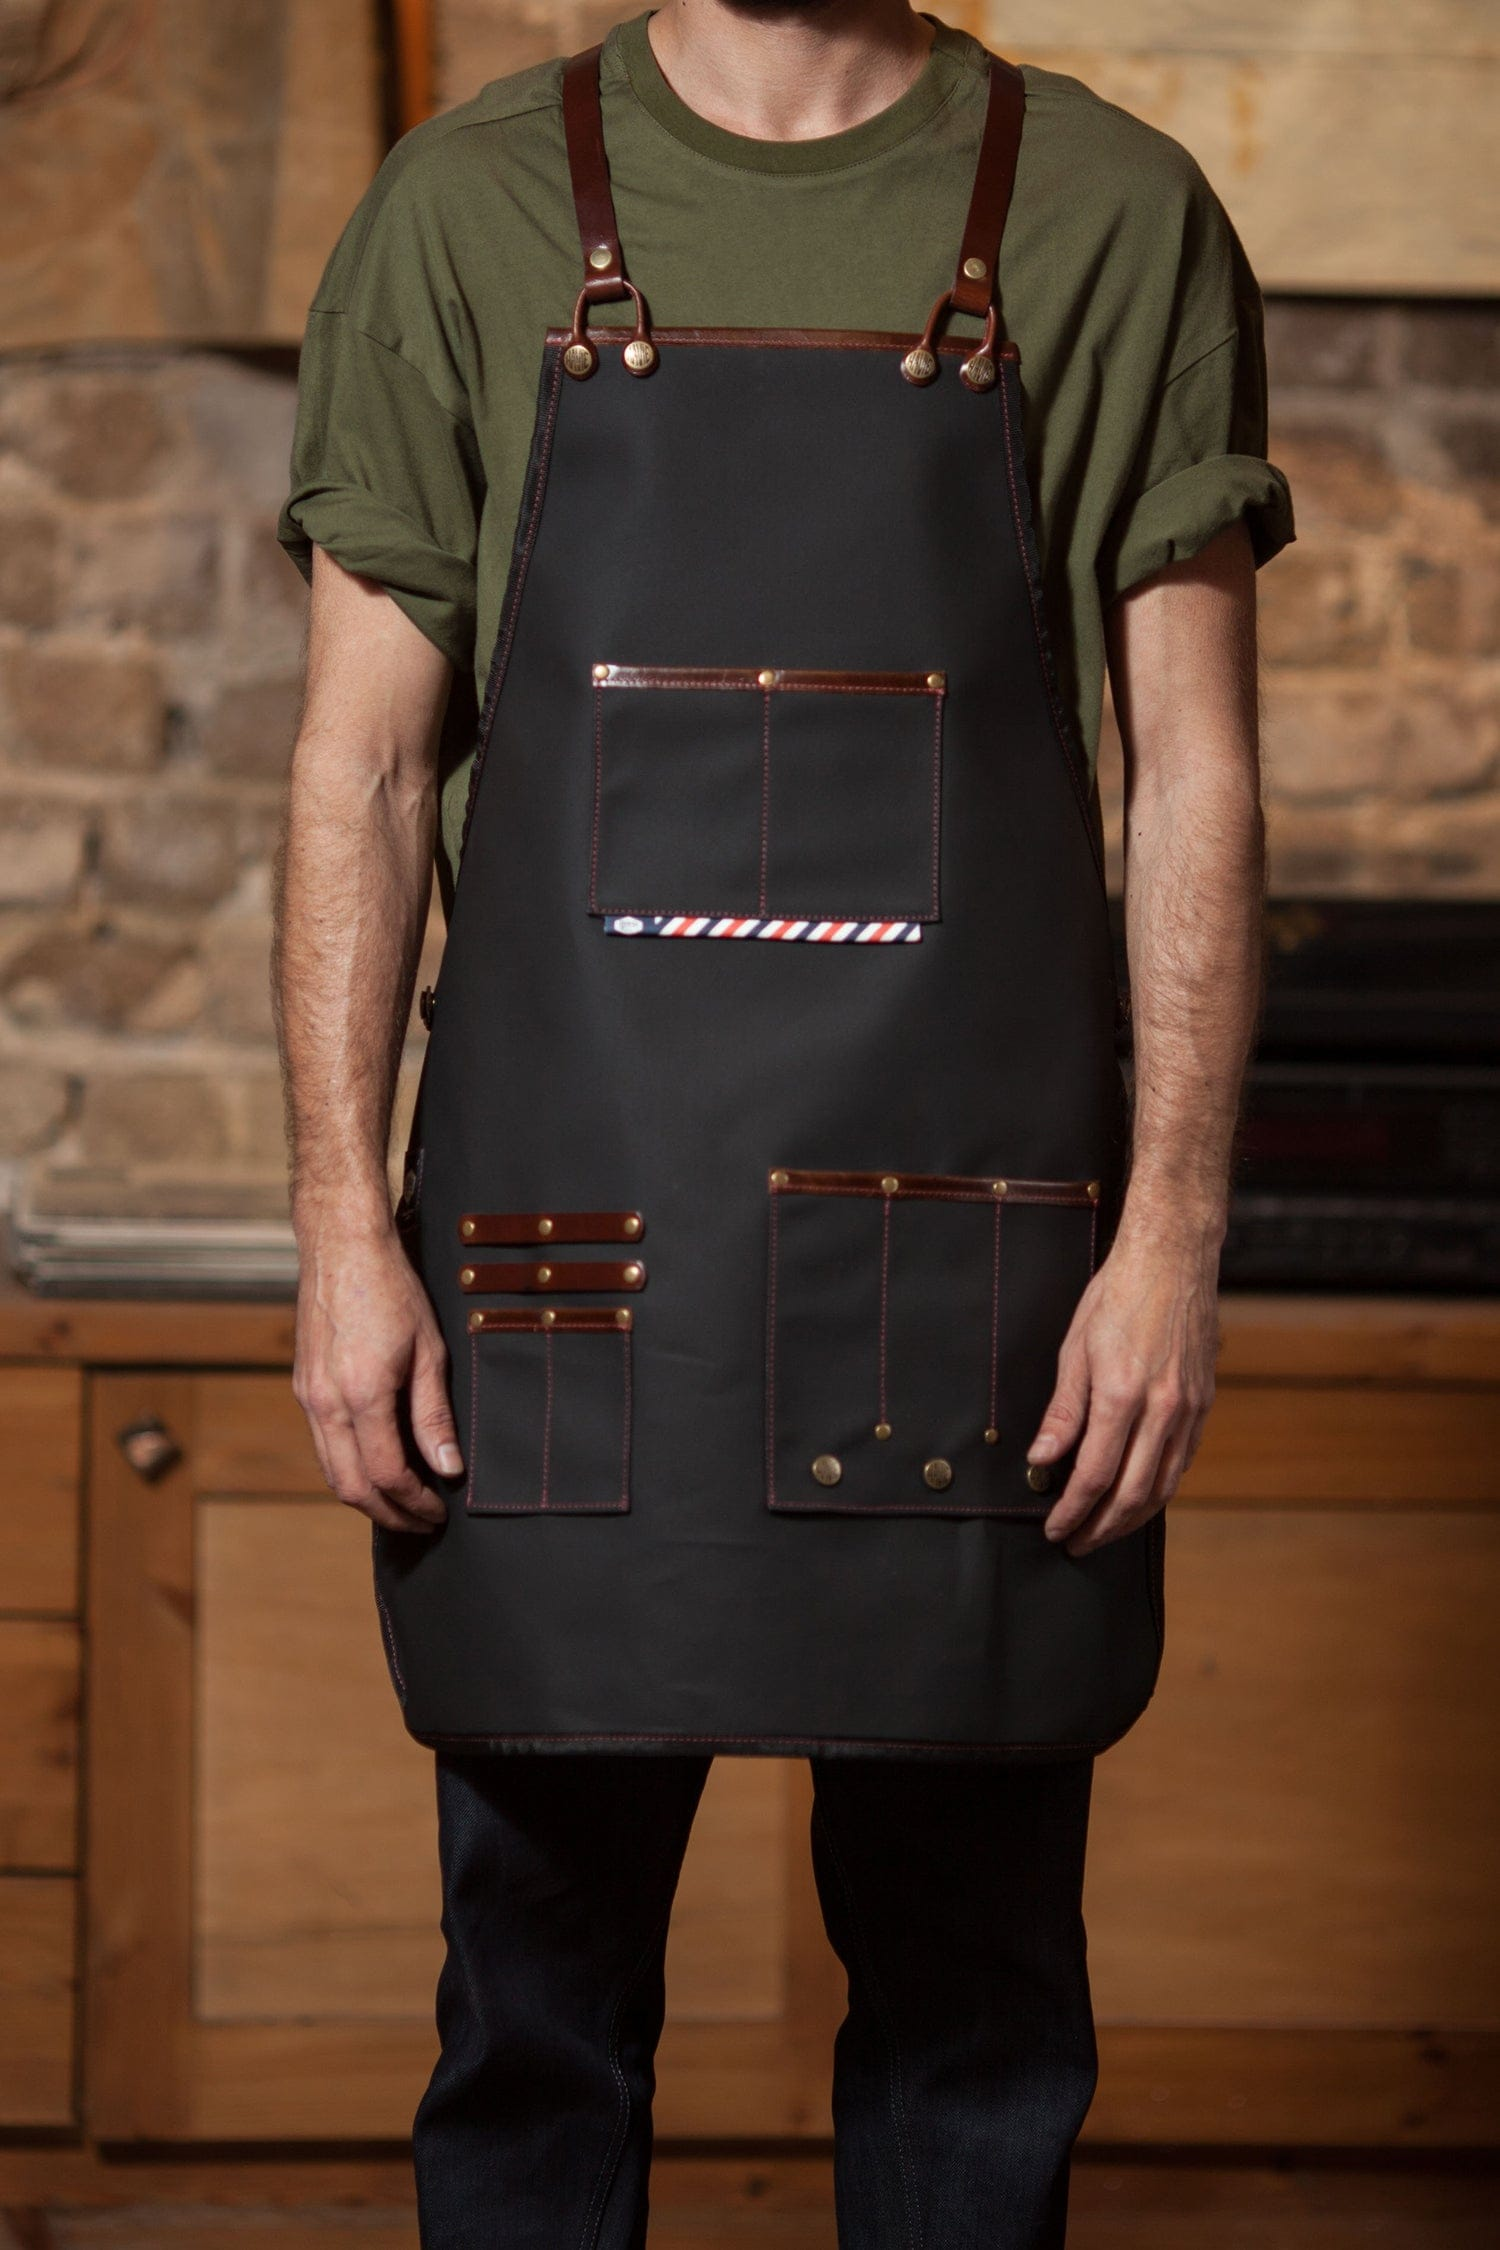 ORIGINAL BARBER APRON - haviemnfct